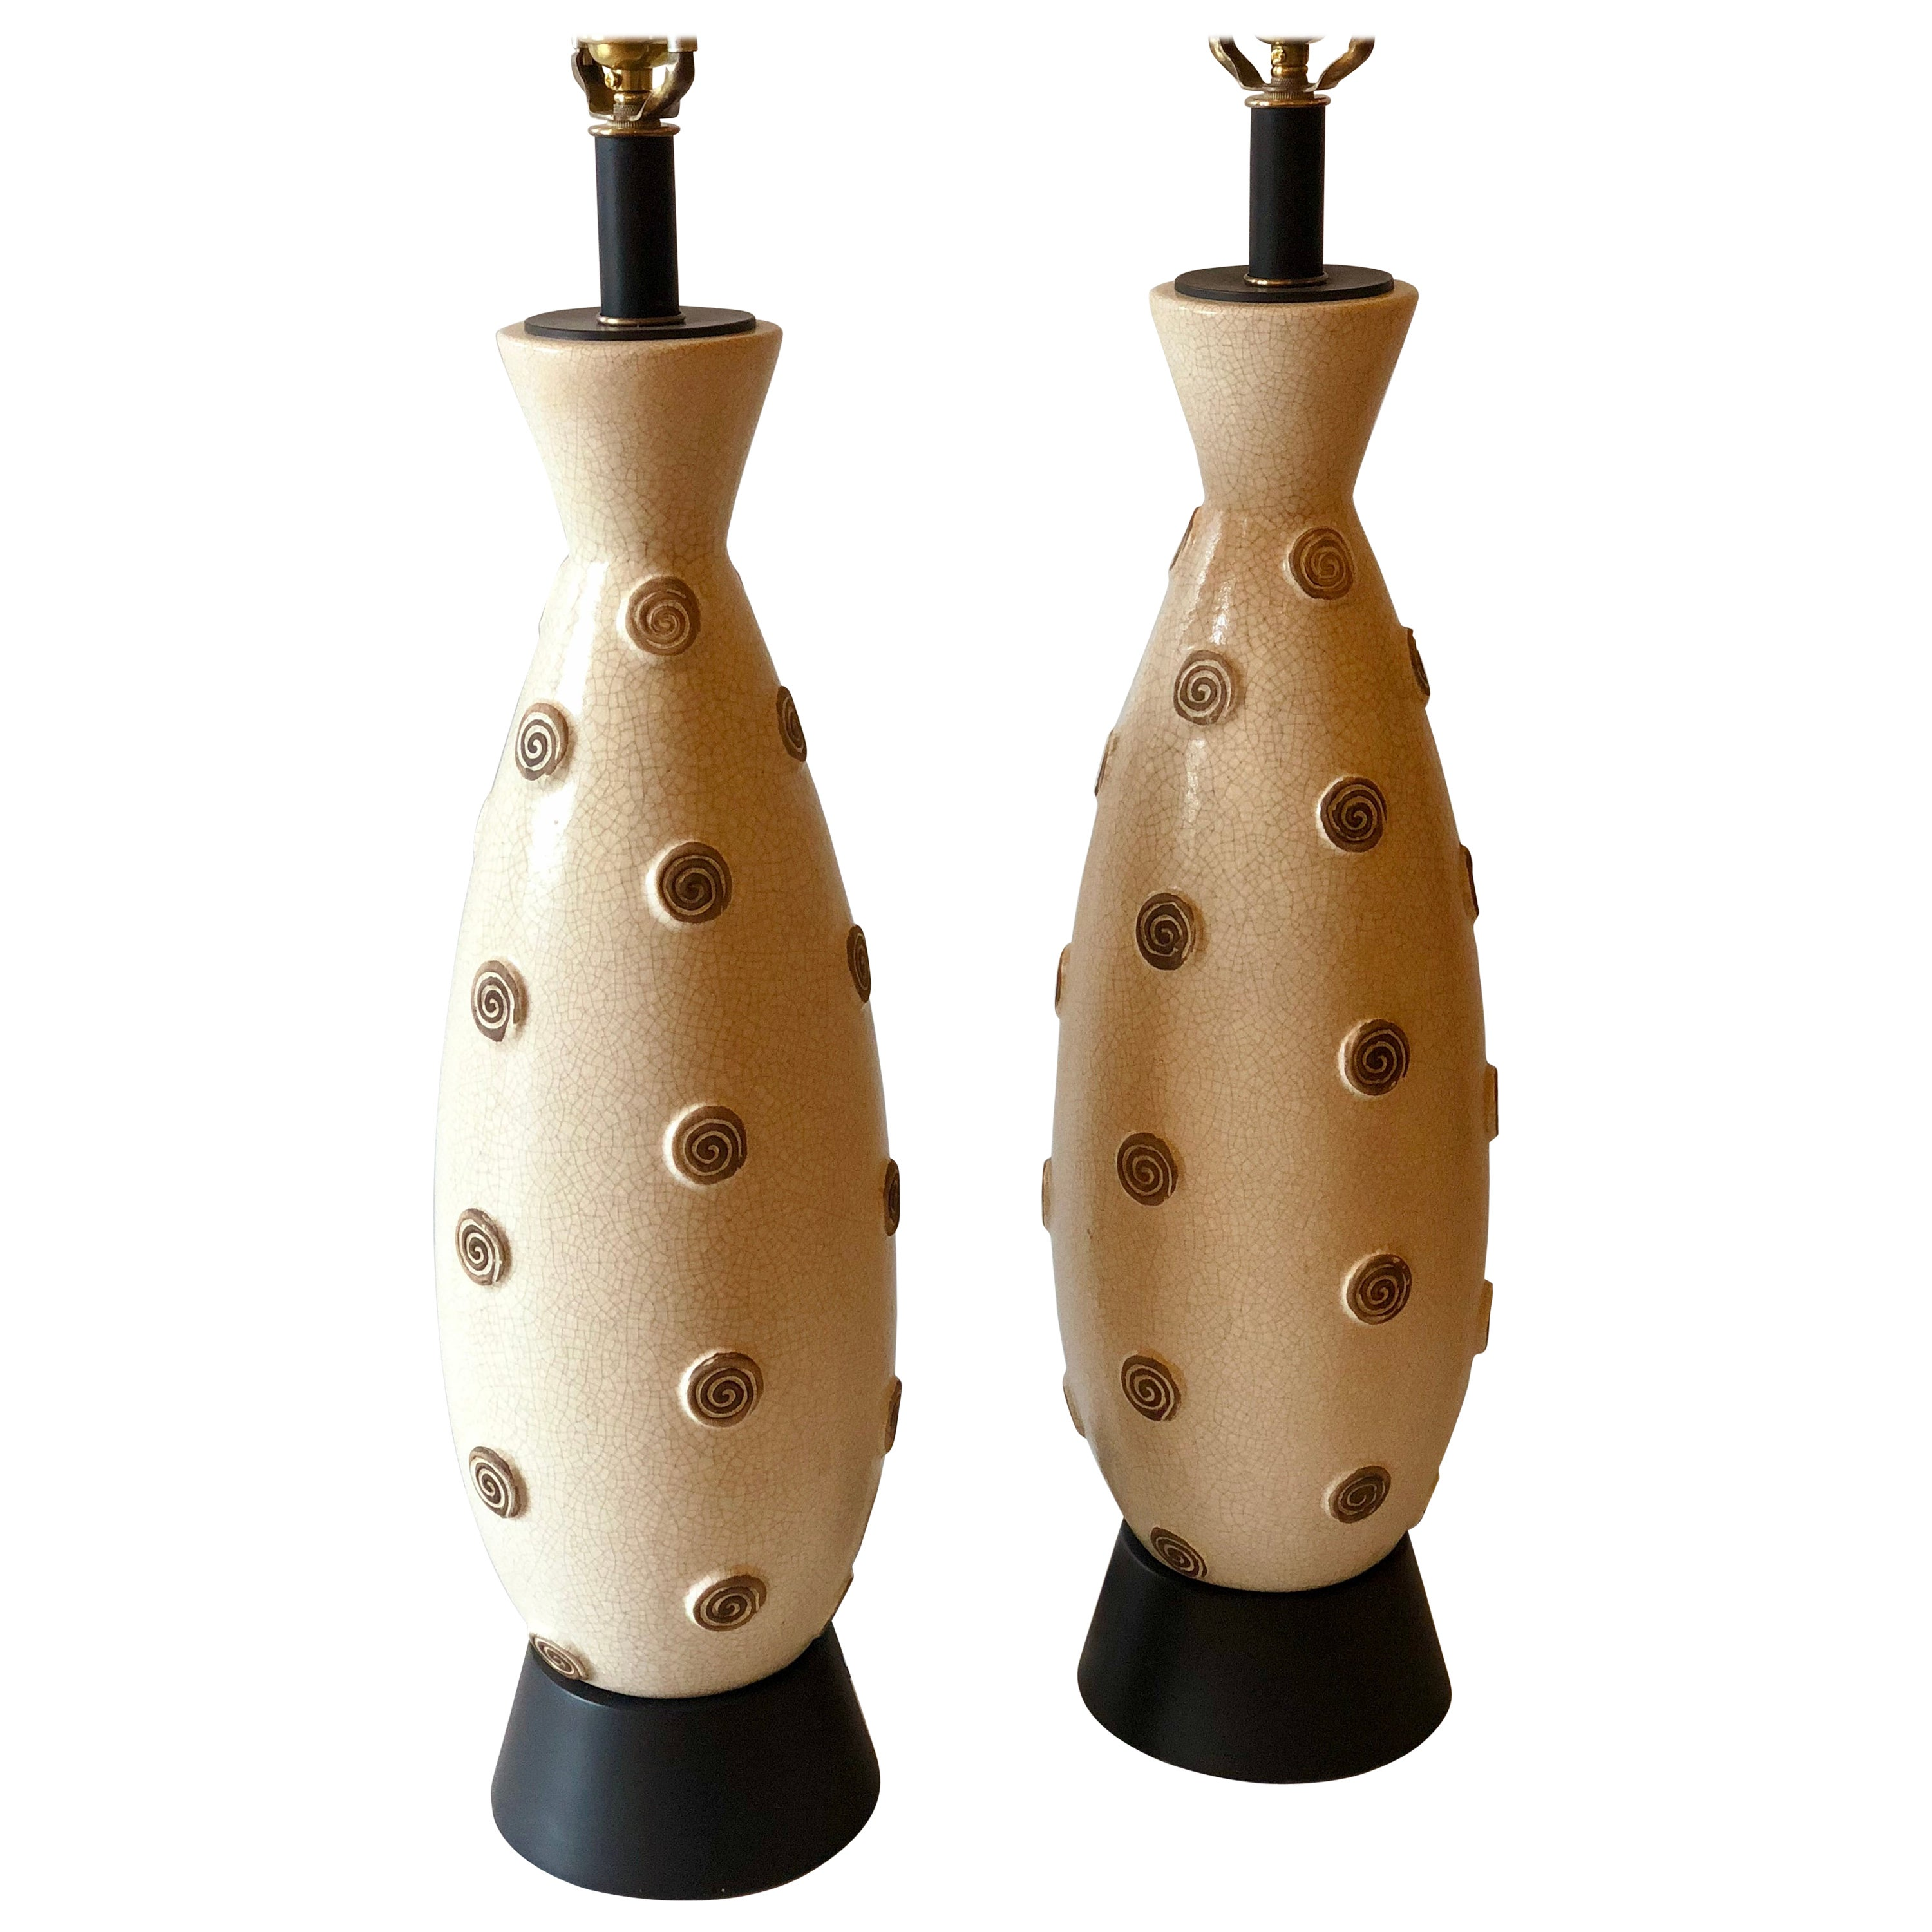 Pair of 1950s American Midcentury Tall Ceramic Table Lamps